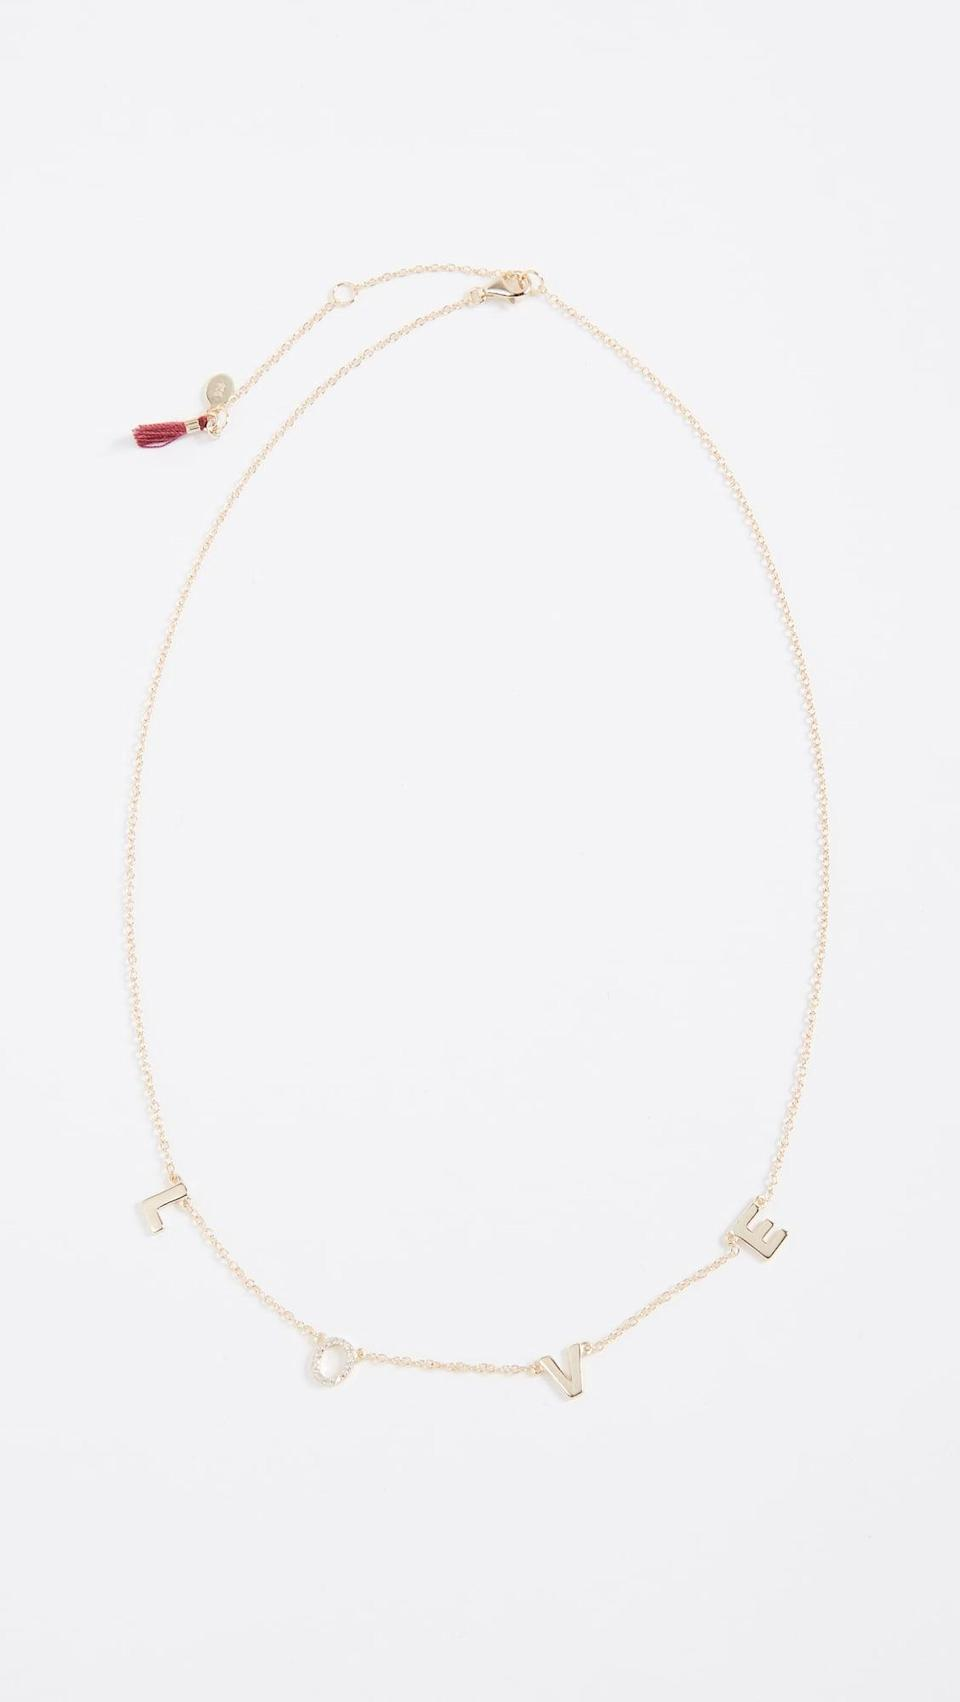 "<p>Show someone you care with this <a href=""https://www.popsugar.com/buy/Shashi-Love-Necklace-532937?p_name=Shashi%20Love%20Necklace&retailer=shopbop.com&pid=532937&price=65&evar1=fab%3Aus&evar9=36291197&evar98=https%3A%2F%2Fwww.popsugar.com%2Ffashion%2Fphoto-gallery%2F36291197%2Fimage%2F47027883%2FShashi-Love-Necklace&list1=shopping%2Choliday%2Cwinter%2Cgift%20guide%2Cwinter%20fashion%2Choliday%20fashion%2Cfashion%20gifts&prop13=api&pdata=1"" rel=""nofollow noopener"" class=""link rapid-noclick-resp"" target=""_blank"" data-ylk=""slk:Shashi Love Necklace"">Shashi Love Necklace</a> ($65).</p>"